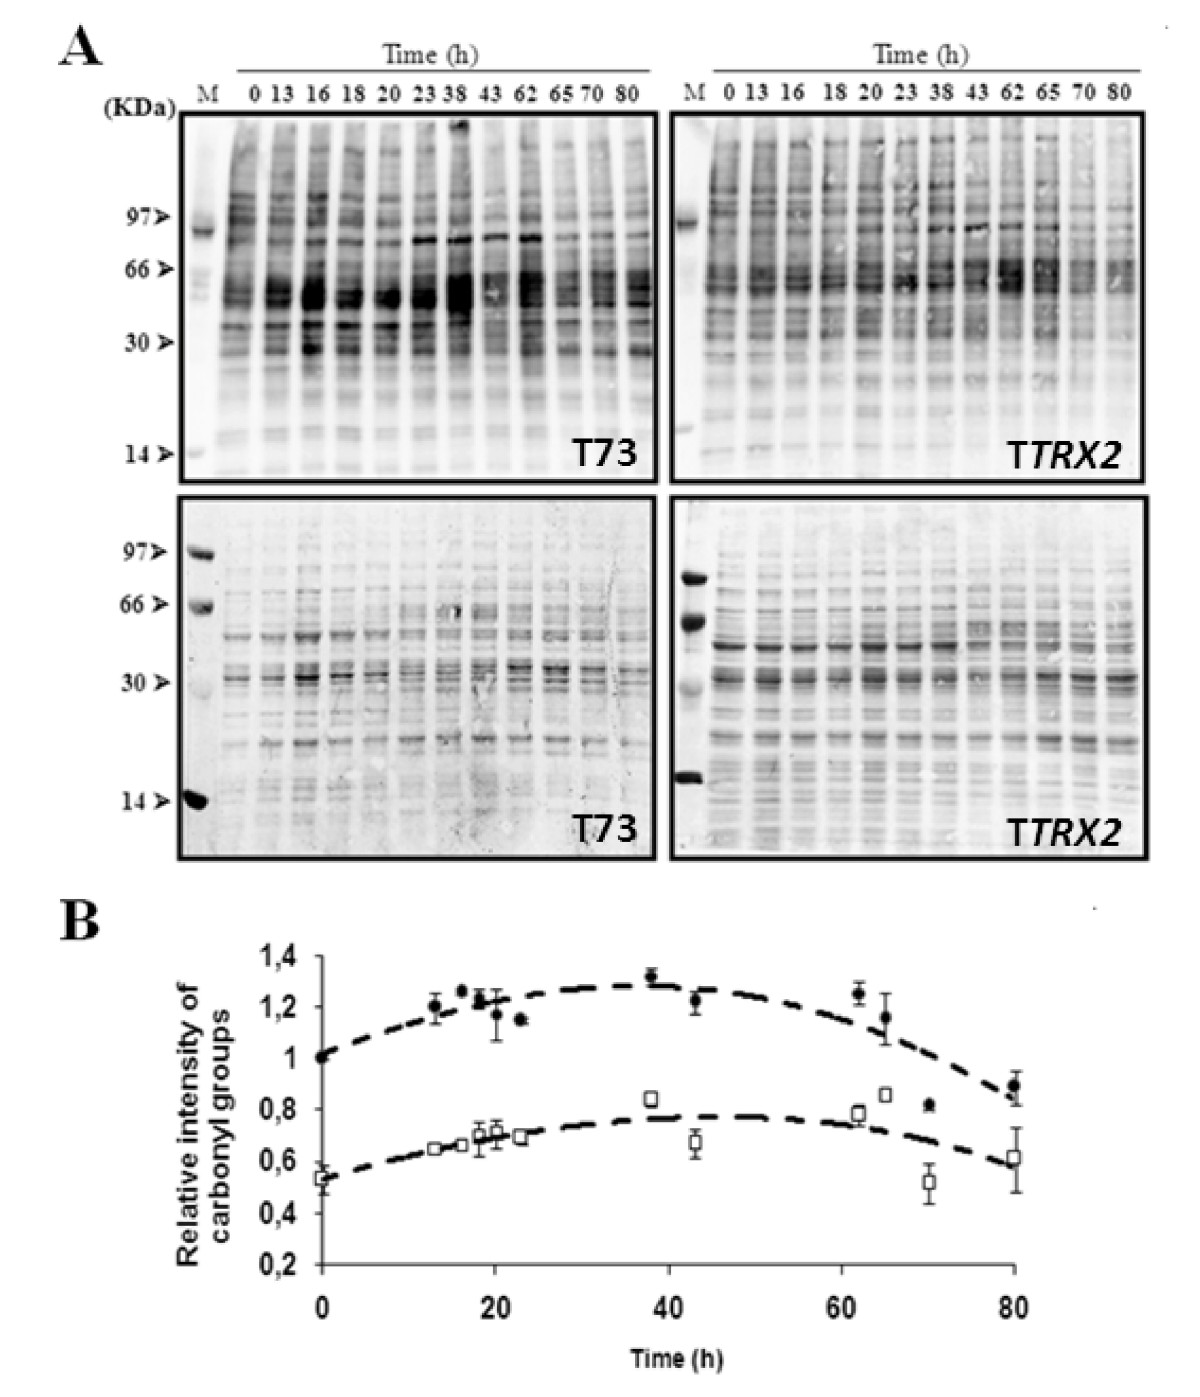 http://static-content.springer.com/image/art%3A10.1186%2F1475-2859-9-9/MediaObjects/12934_2009_Article_399_Fig7_HTML.jpg